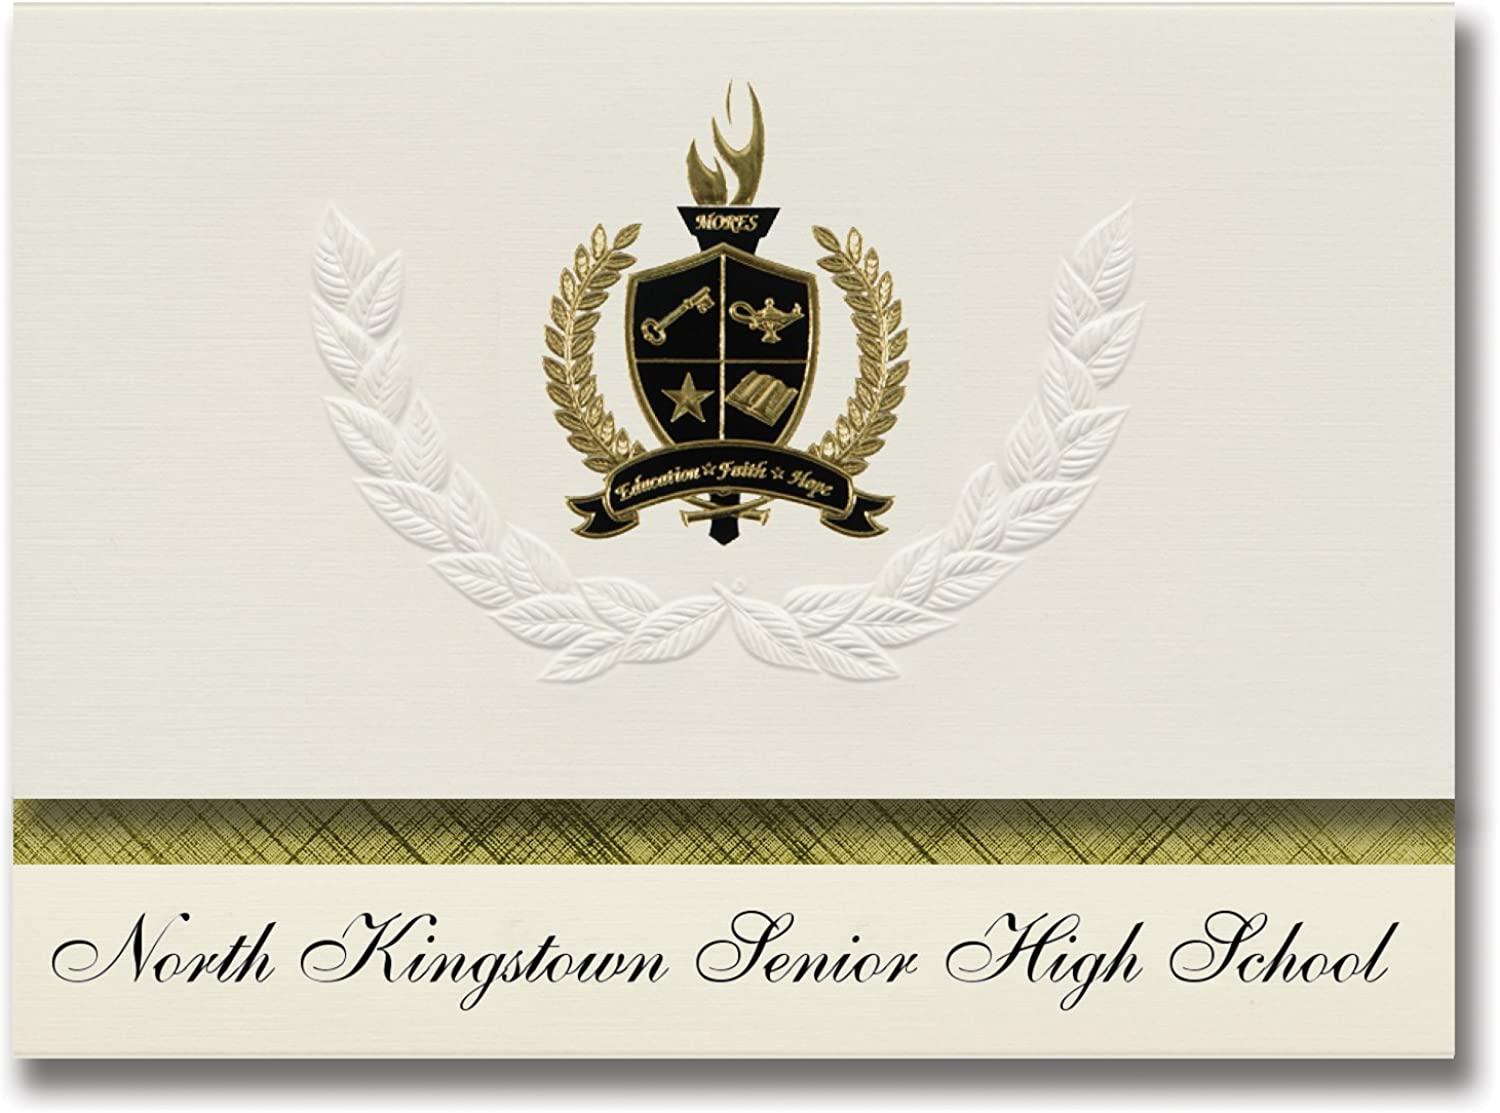 Signature Ankündigungen North Kingstown Senior High School (North Kingstown, RI) Graduation Ankündigungen, Presidential Elite Pack 25 mit Gold & Schwarz Metallic Folie Dichtung B078VDKNQ3   | Mode-Muster